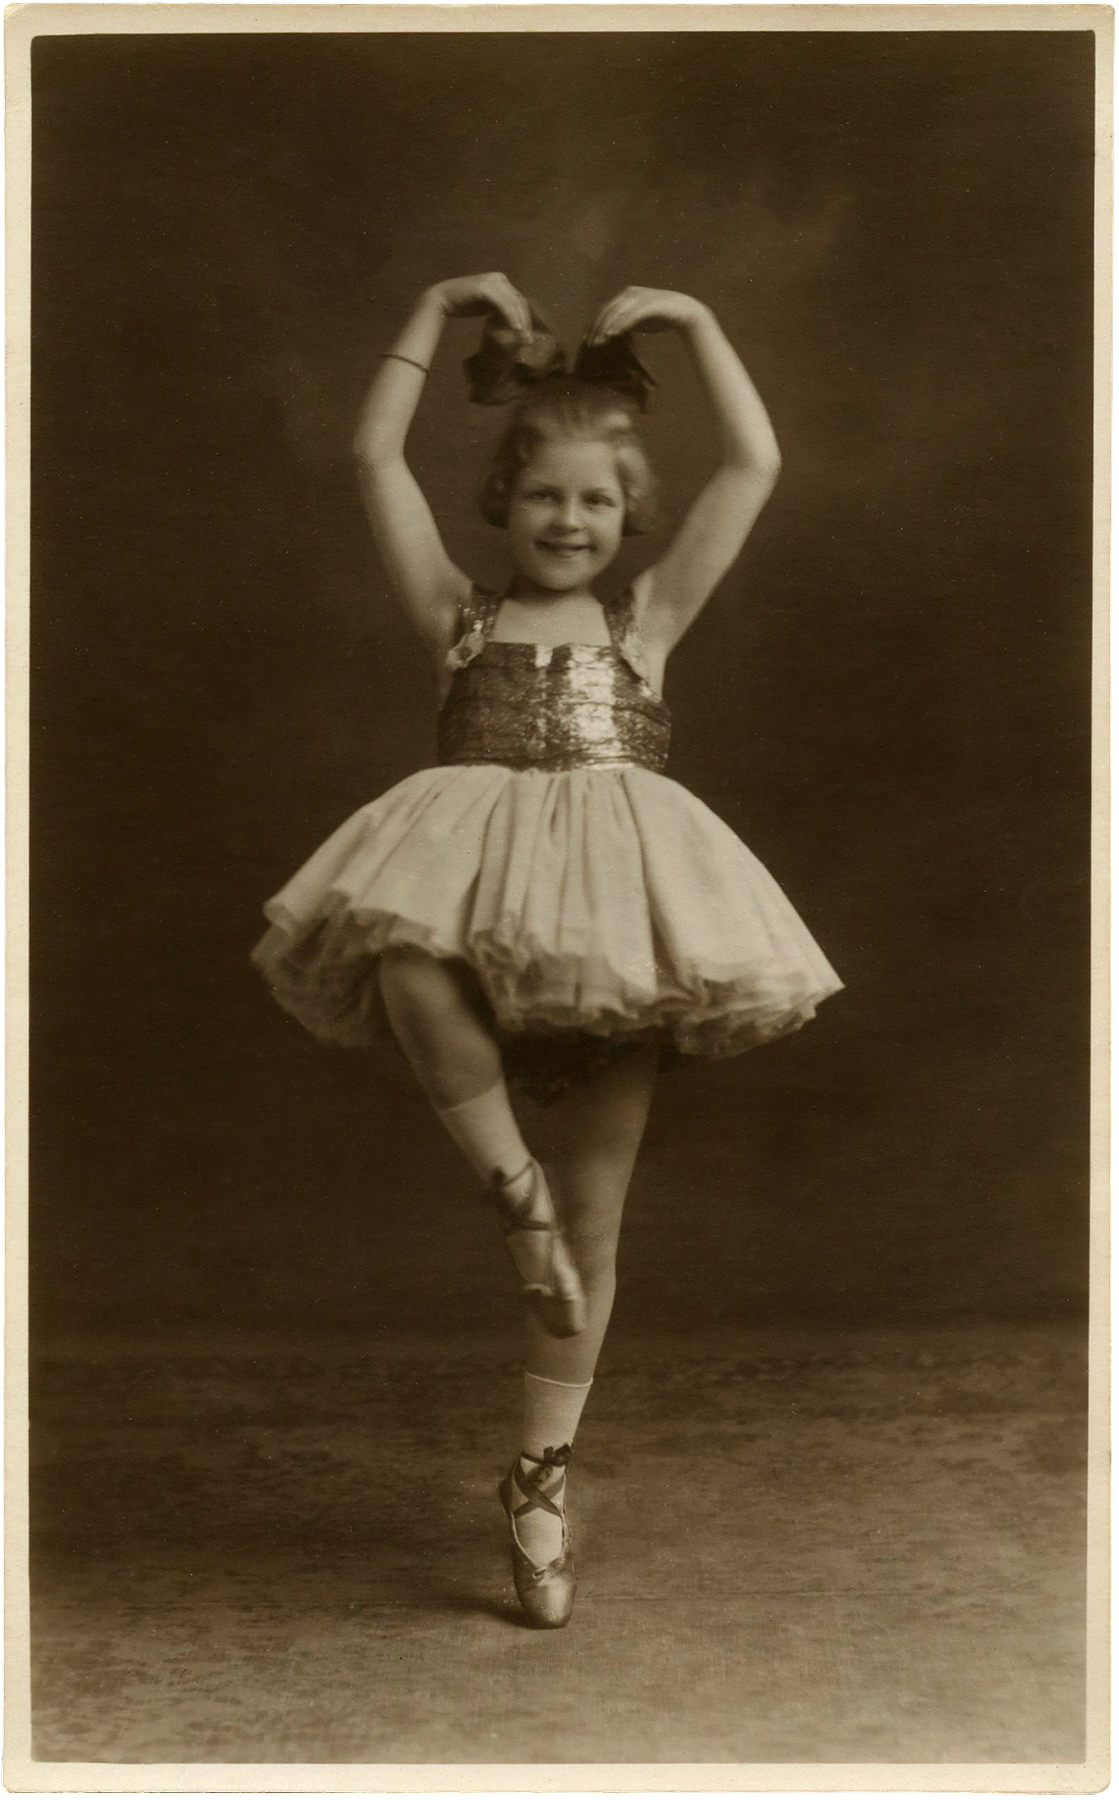 Cute St Patricks Day Wallpaper Vintage Ballerina Child Photo Adorable The Graphics Fairy